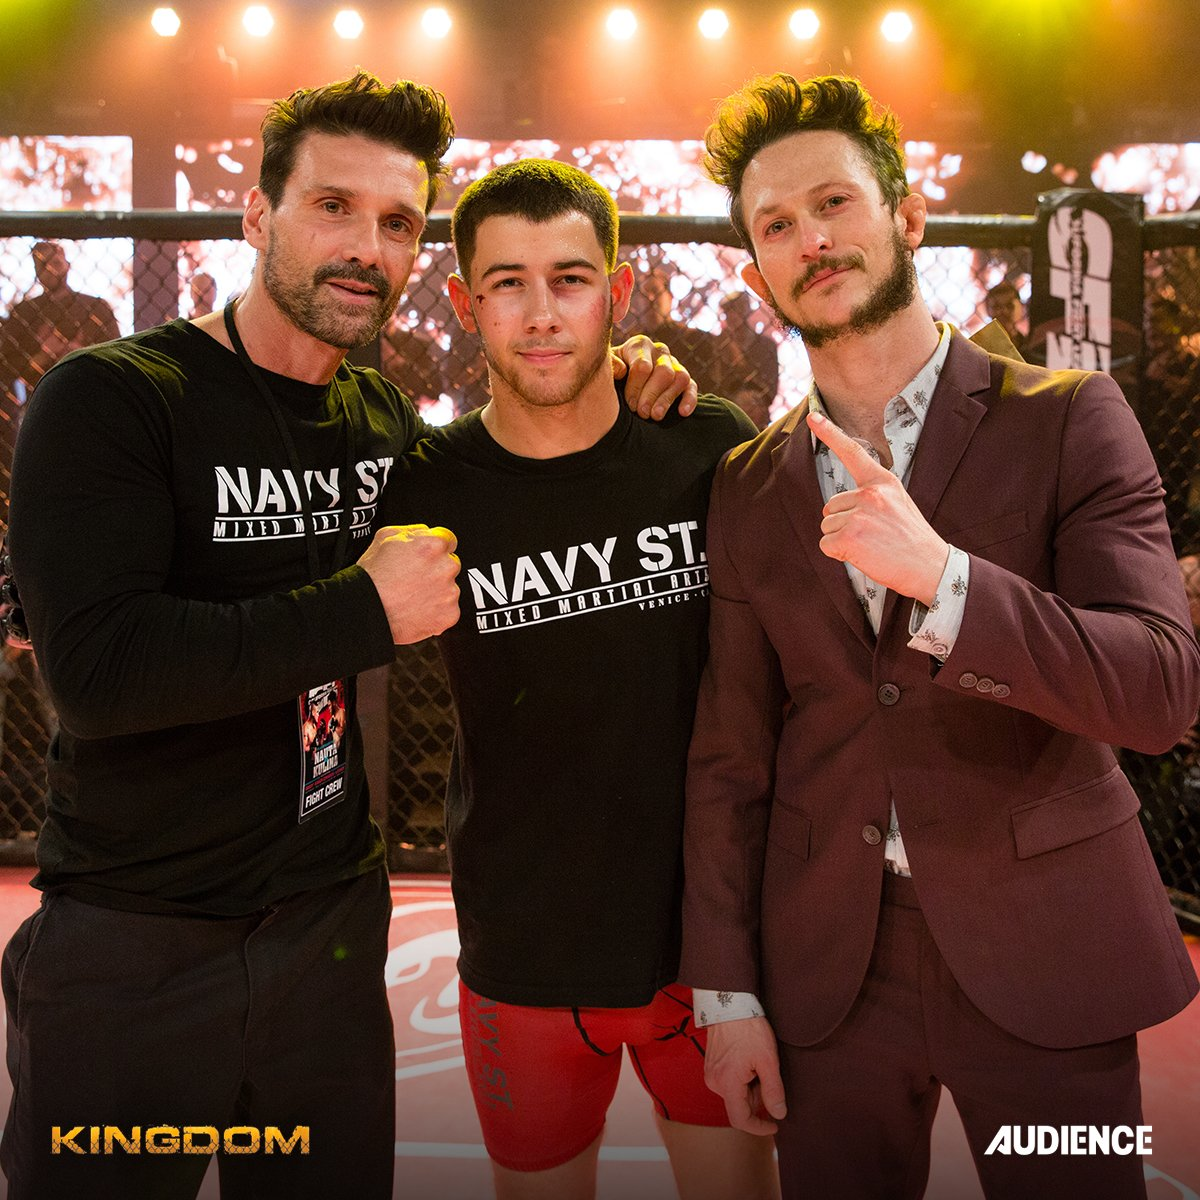 'Til @KingdomAudience come. Series Finale of#KingdomTV is tonight at 8pm. Don't miss this �� https://t.co/rtBuv6s10e